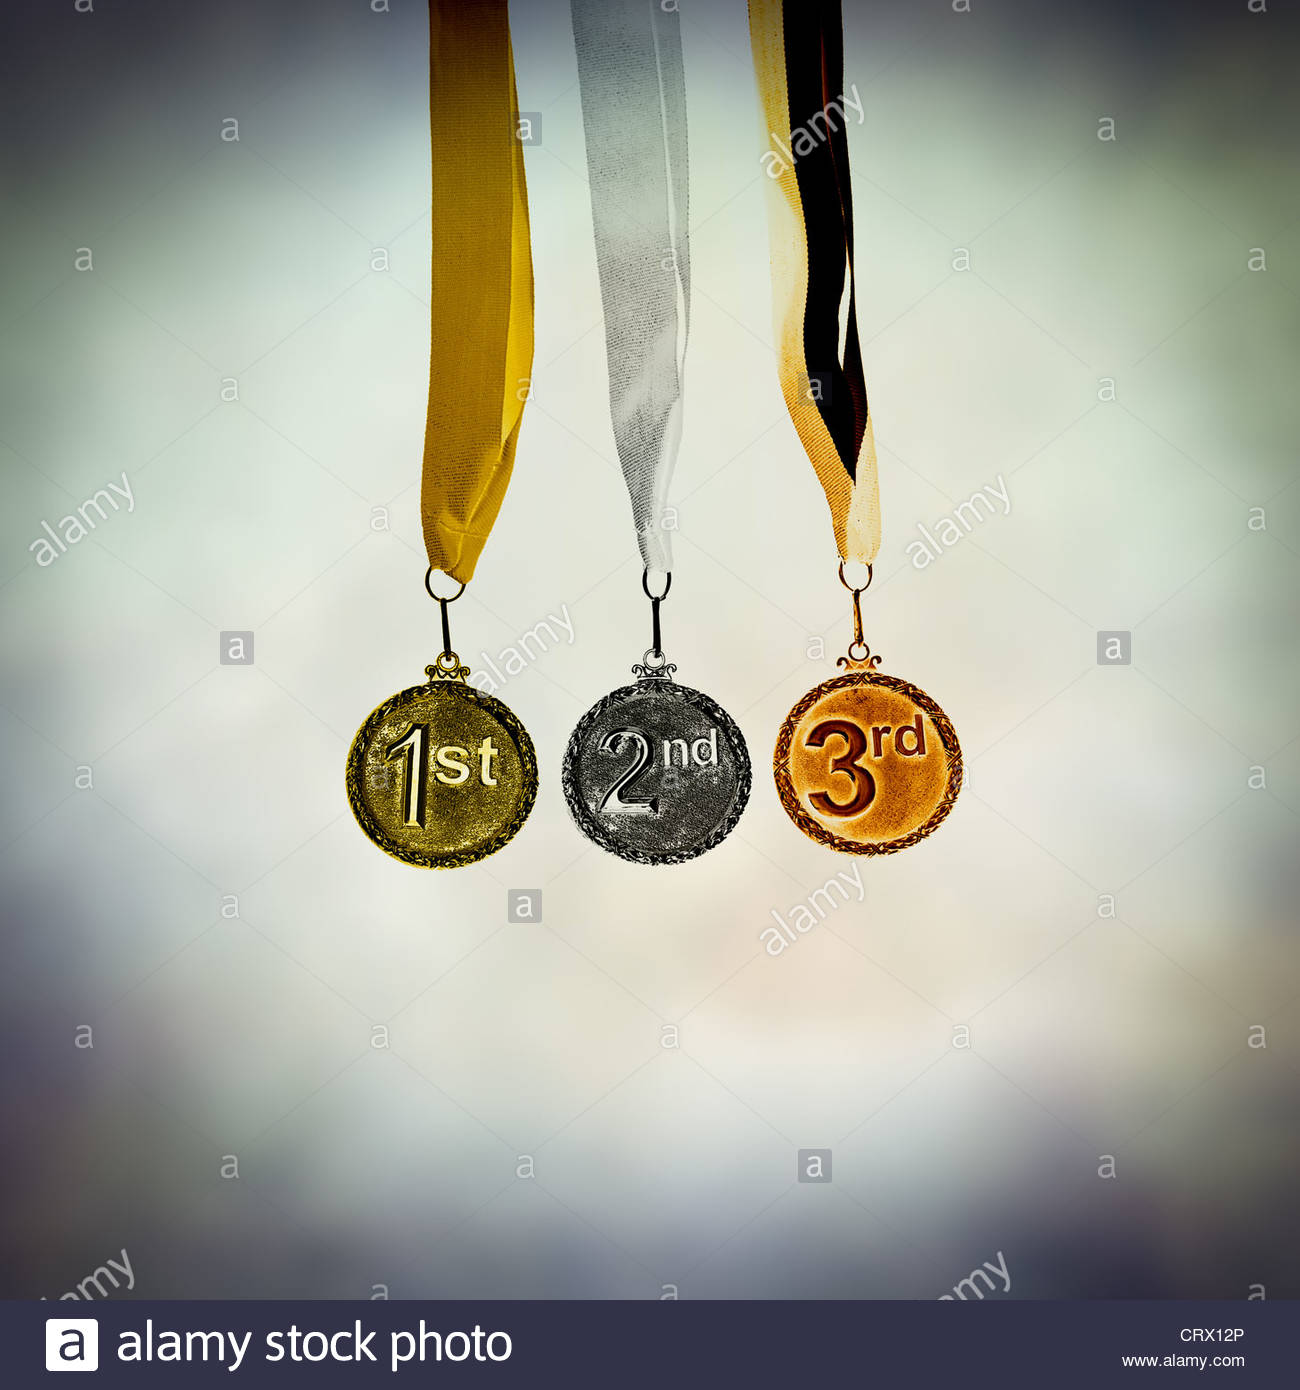 Gold medal - Stock Image